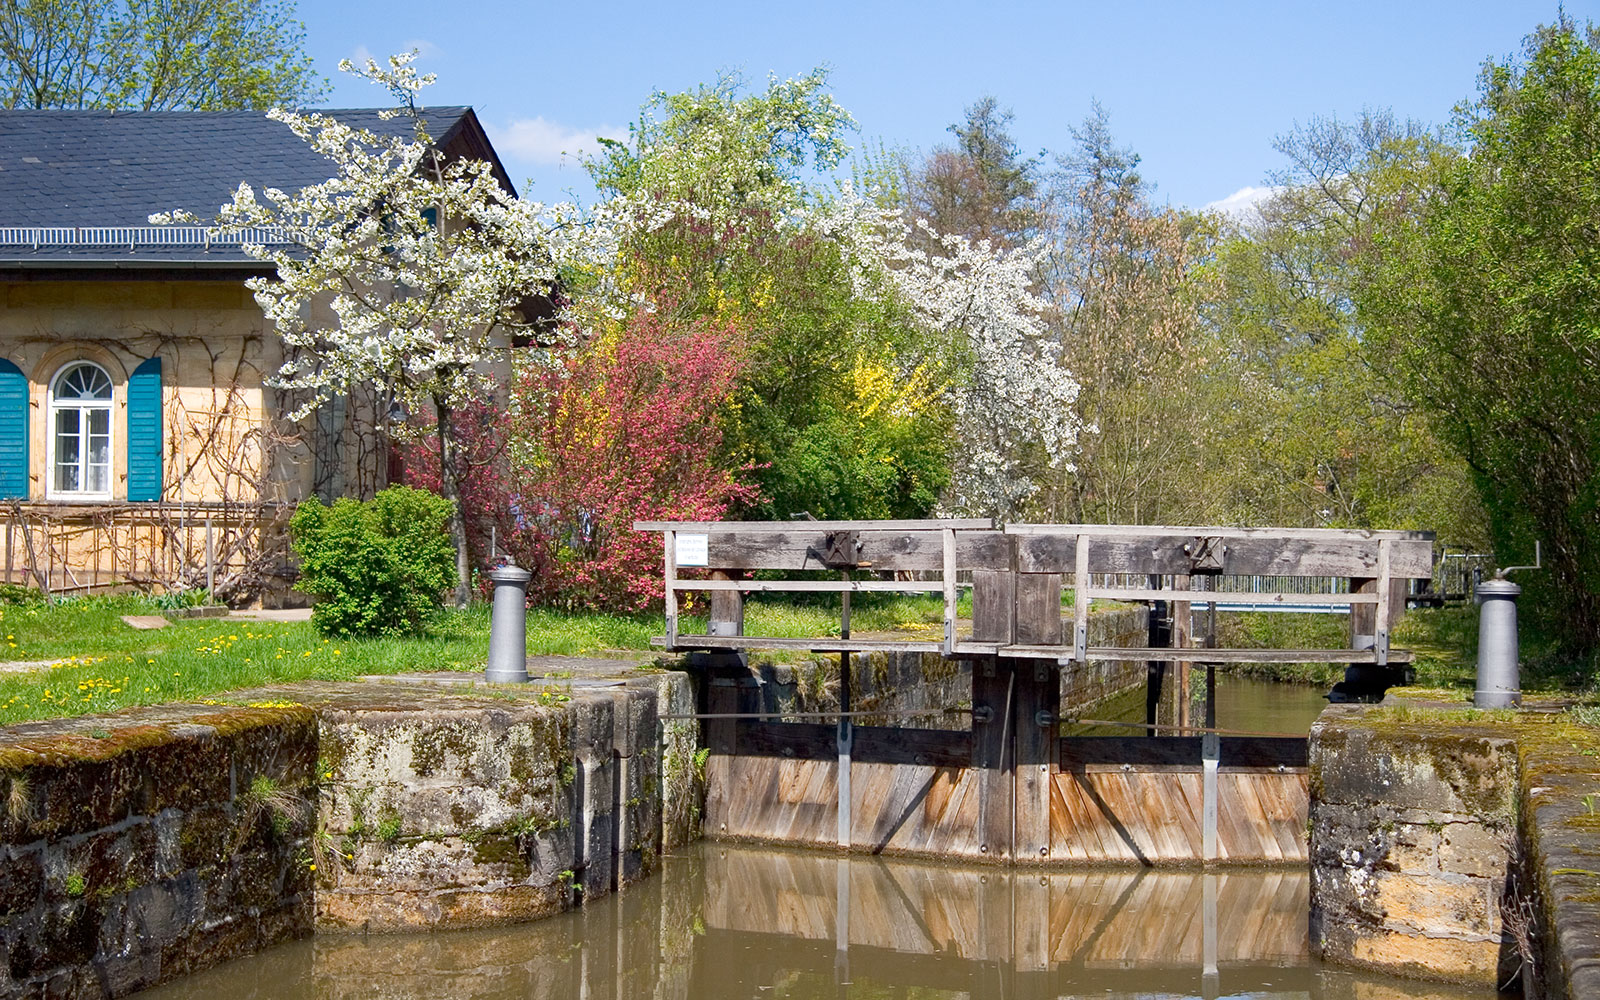 The Lock 100, with locksman's house, in Bamberg's Hain city park.